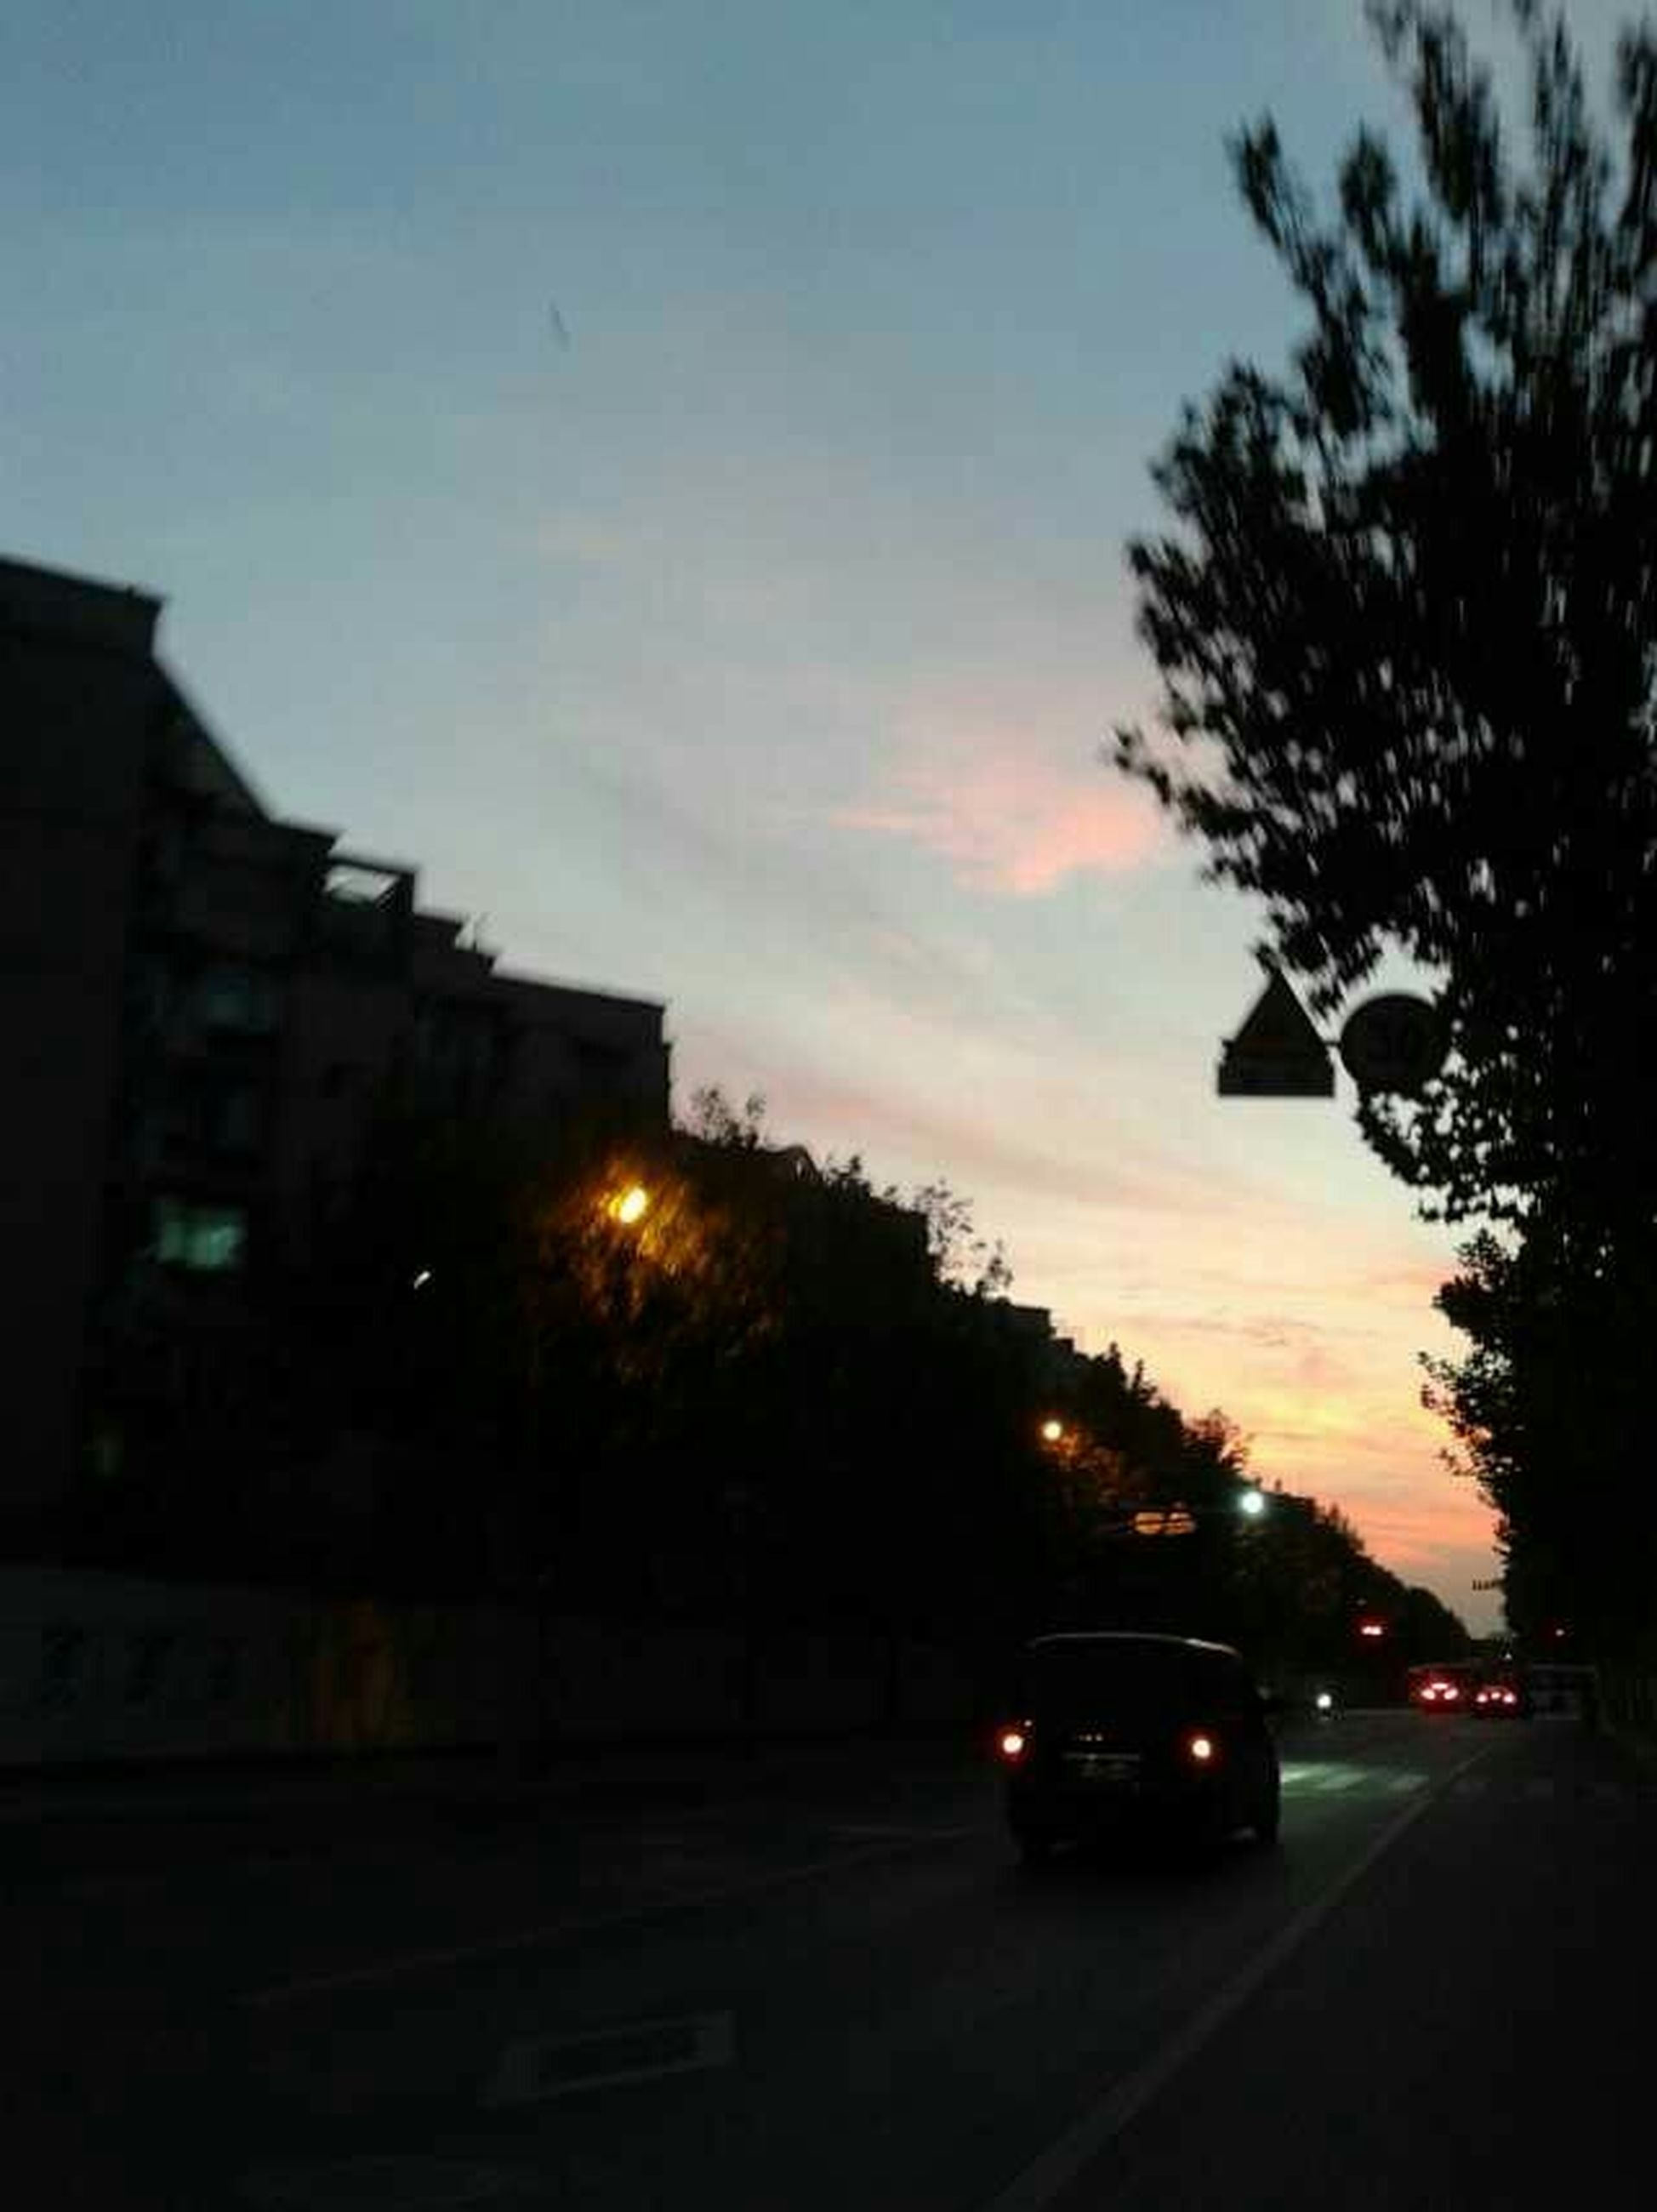 car, sunset, transportation, land vehicle, street, road, tree, silhouette, sky, building exterior, mode of transport, city, built structure, architecture, dusk, traffic, street light, illuminated, outdoors, no people